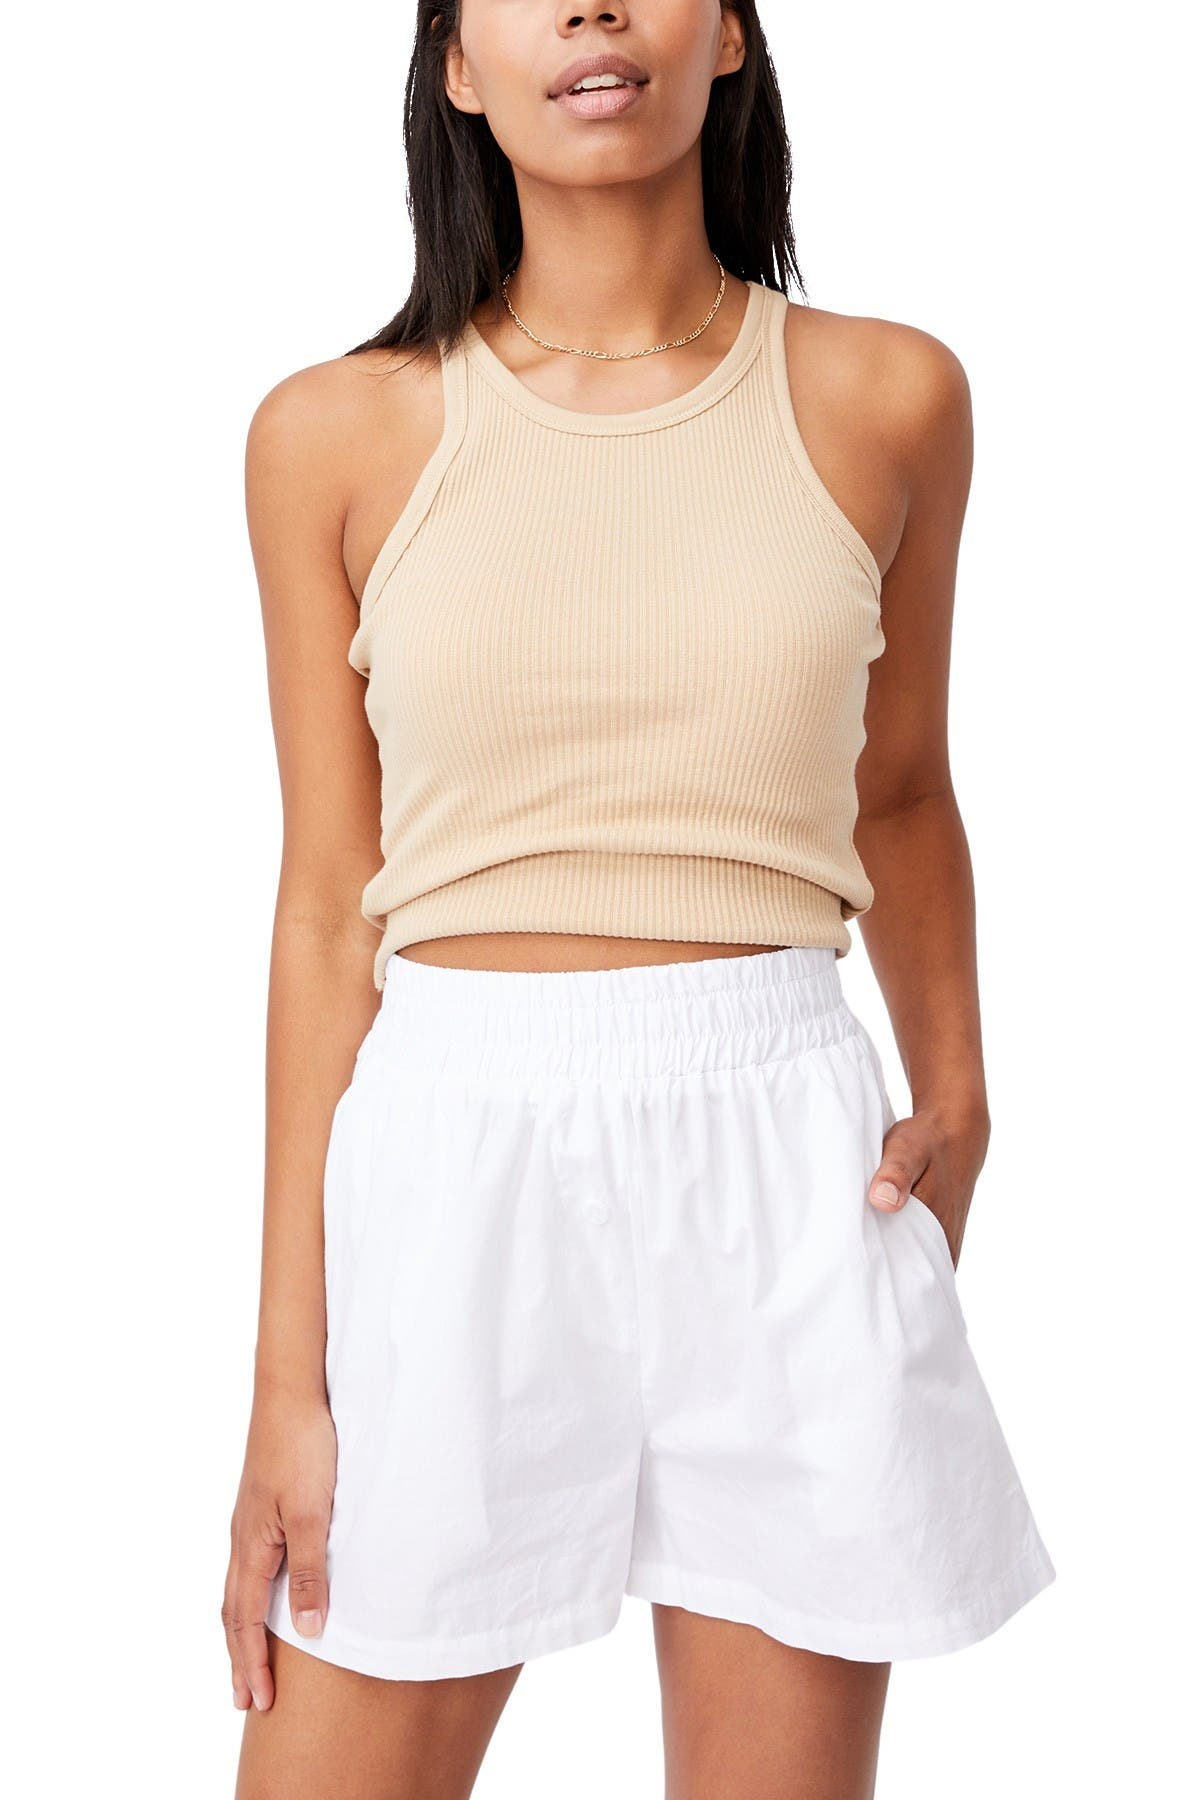 Image of Cotton On Poppy Pull-On Shorts